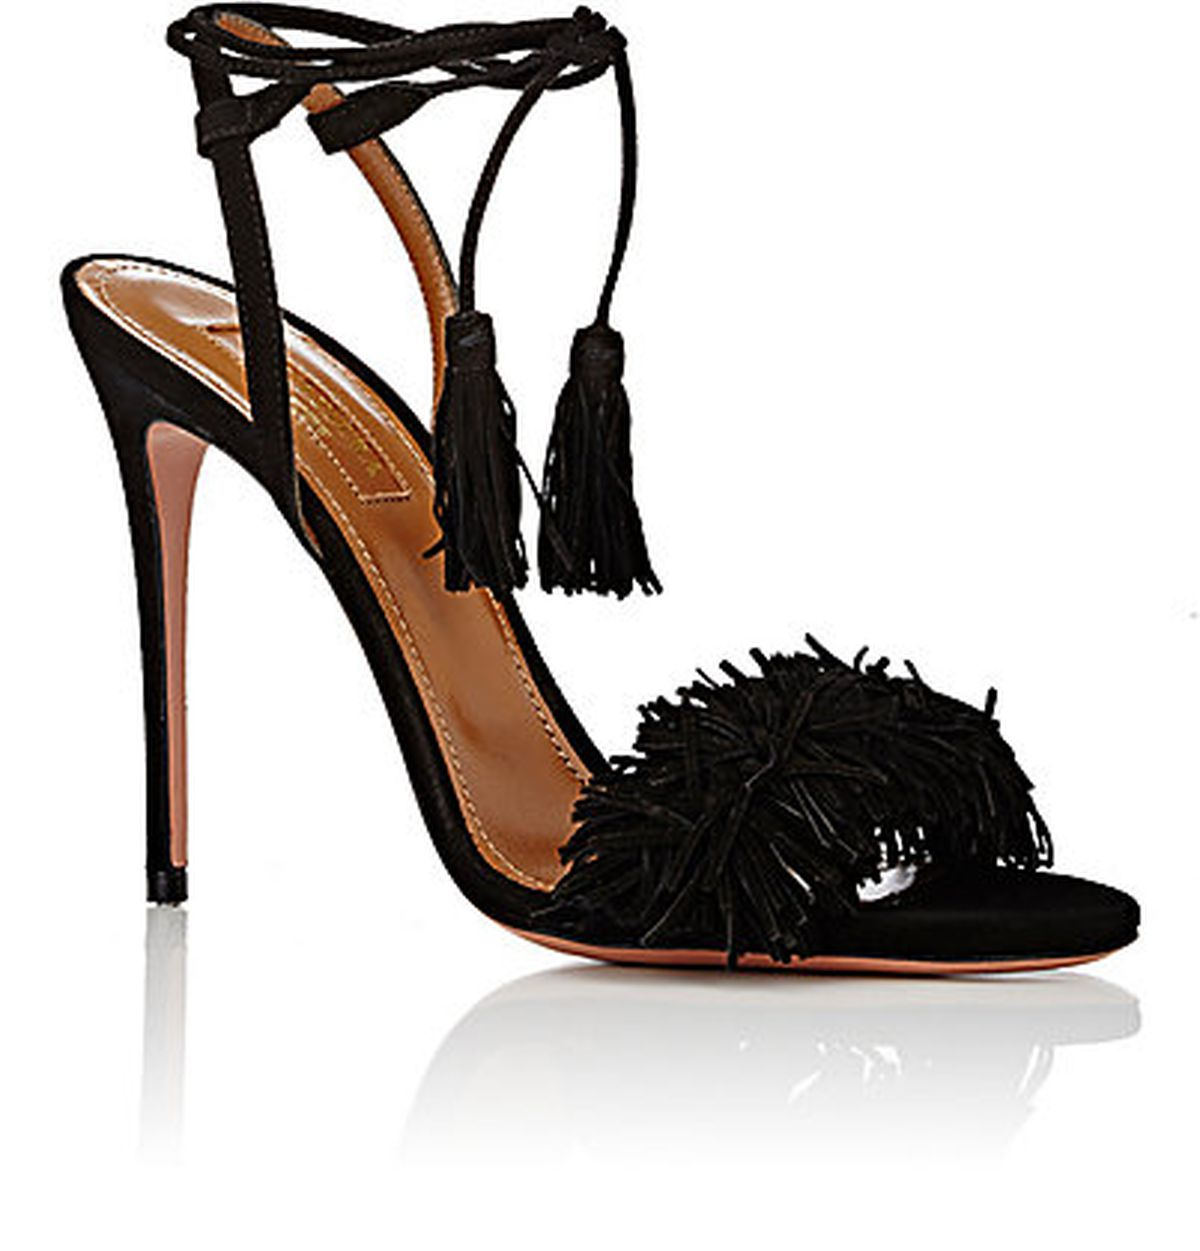 Compare with the $145 Ivanka Trump Hettie, as seen on Zappos: